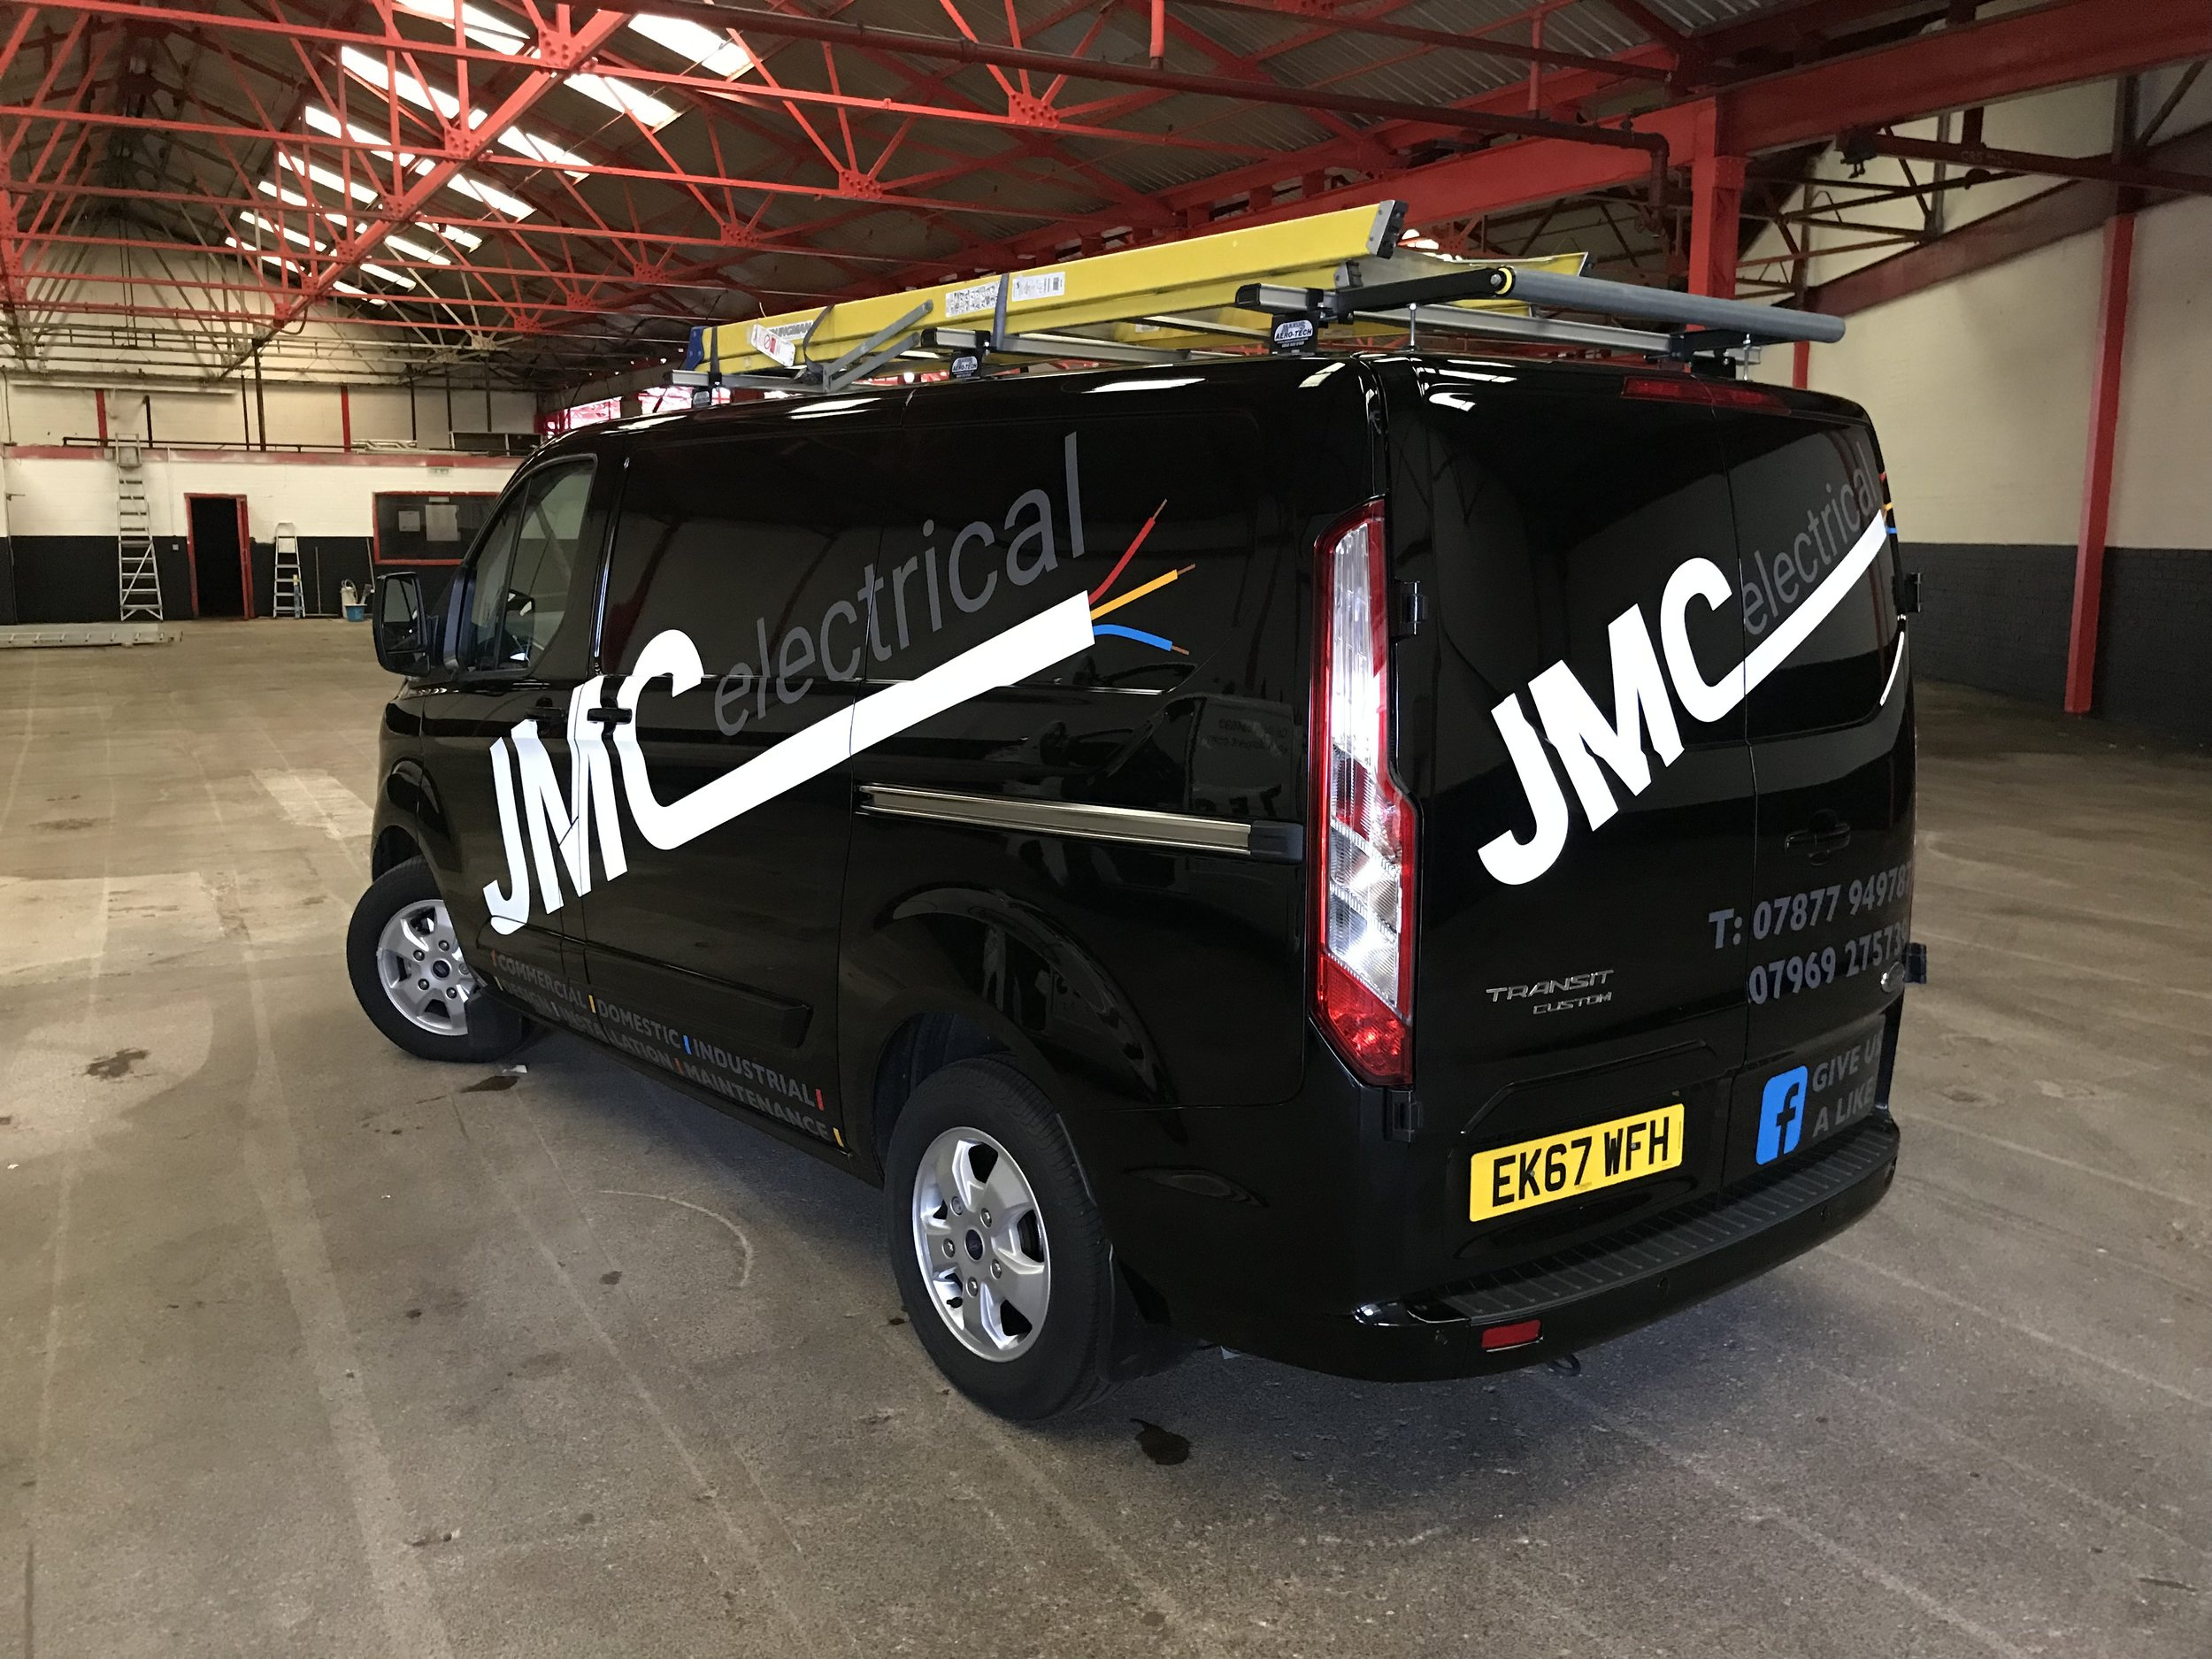 Reflective vehicle graphics